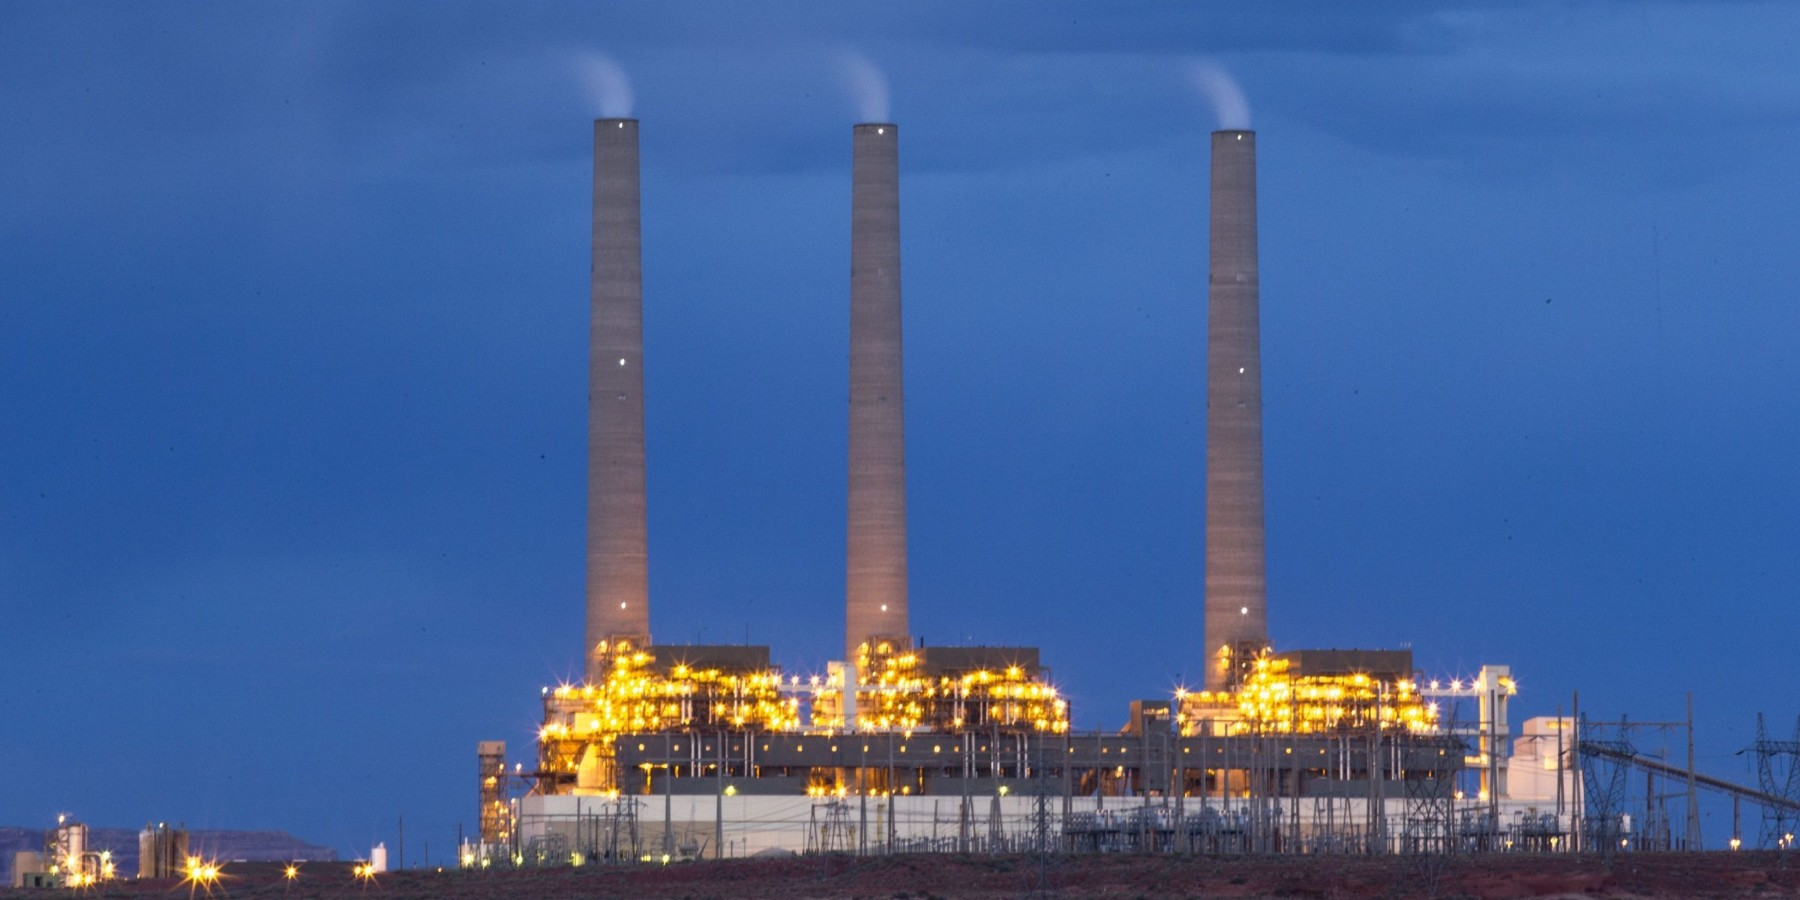 Biggest coal plant in the West shuts down this week - Electrek